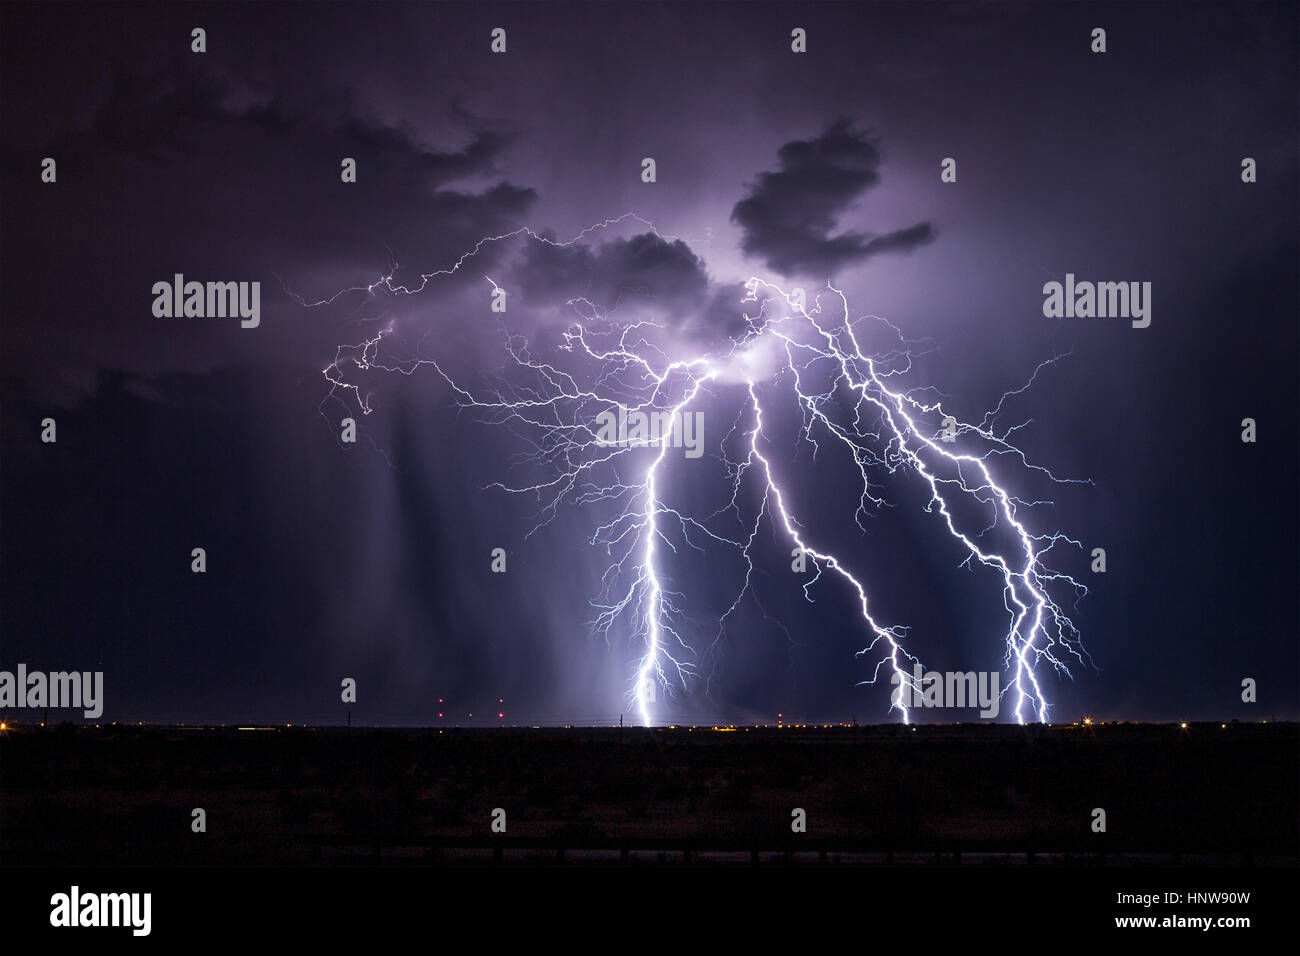 Lightning storm in Arizona - Stock Image